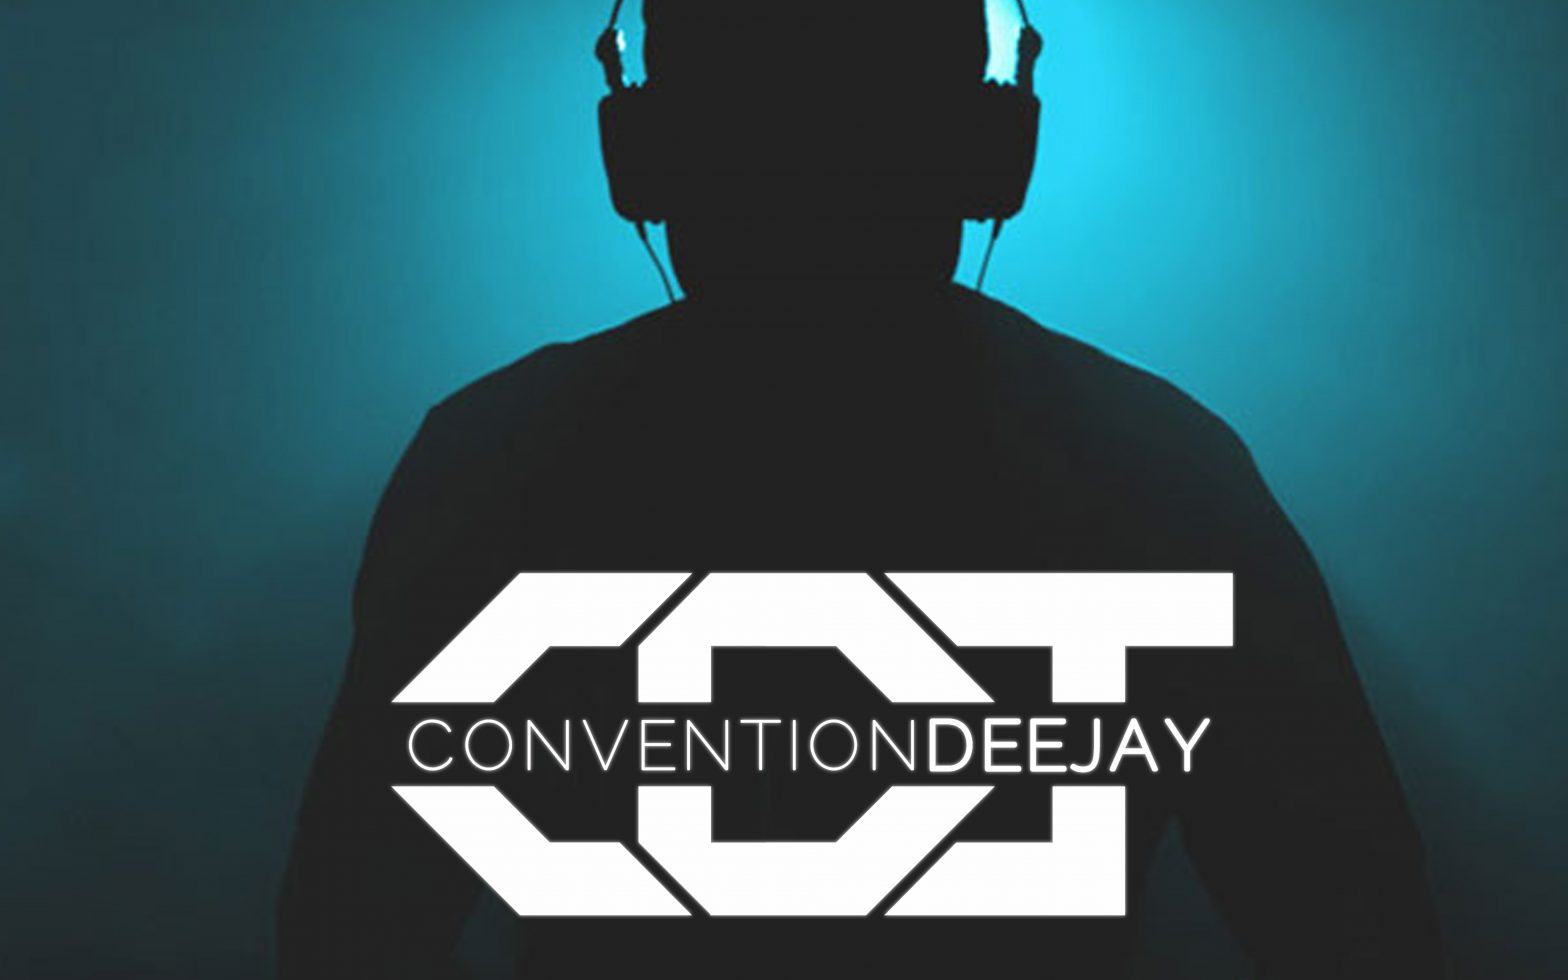 Convention Dj - ltc